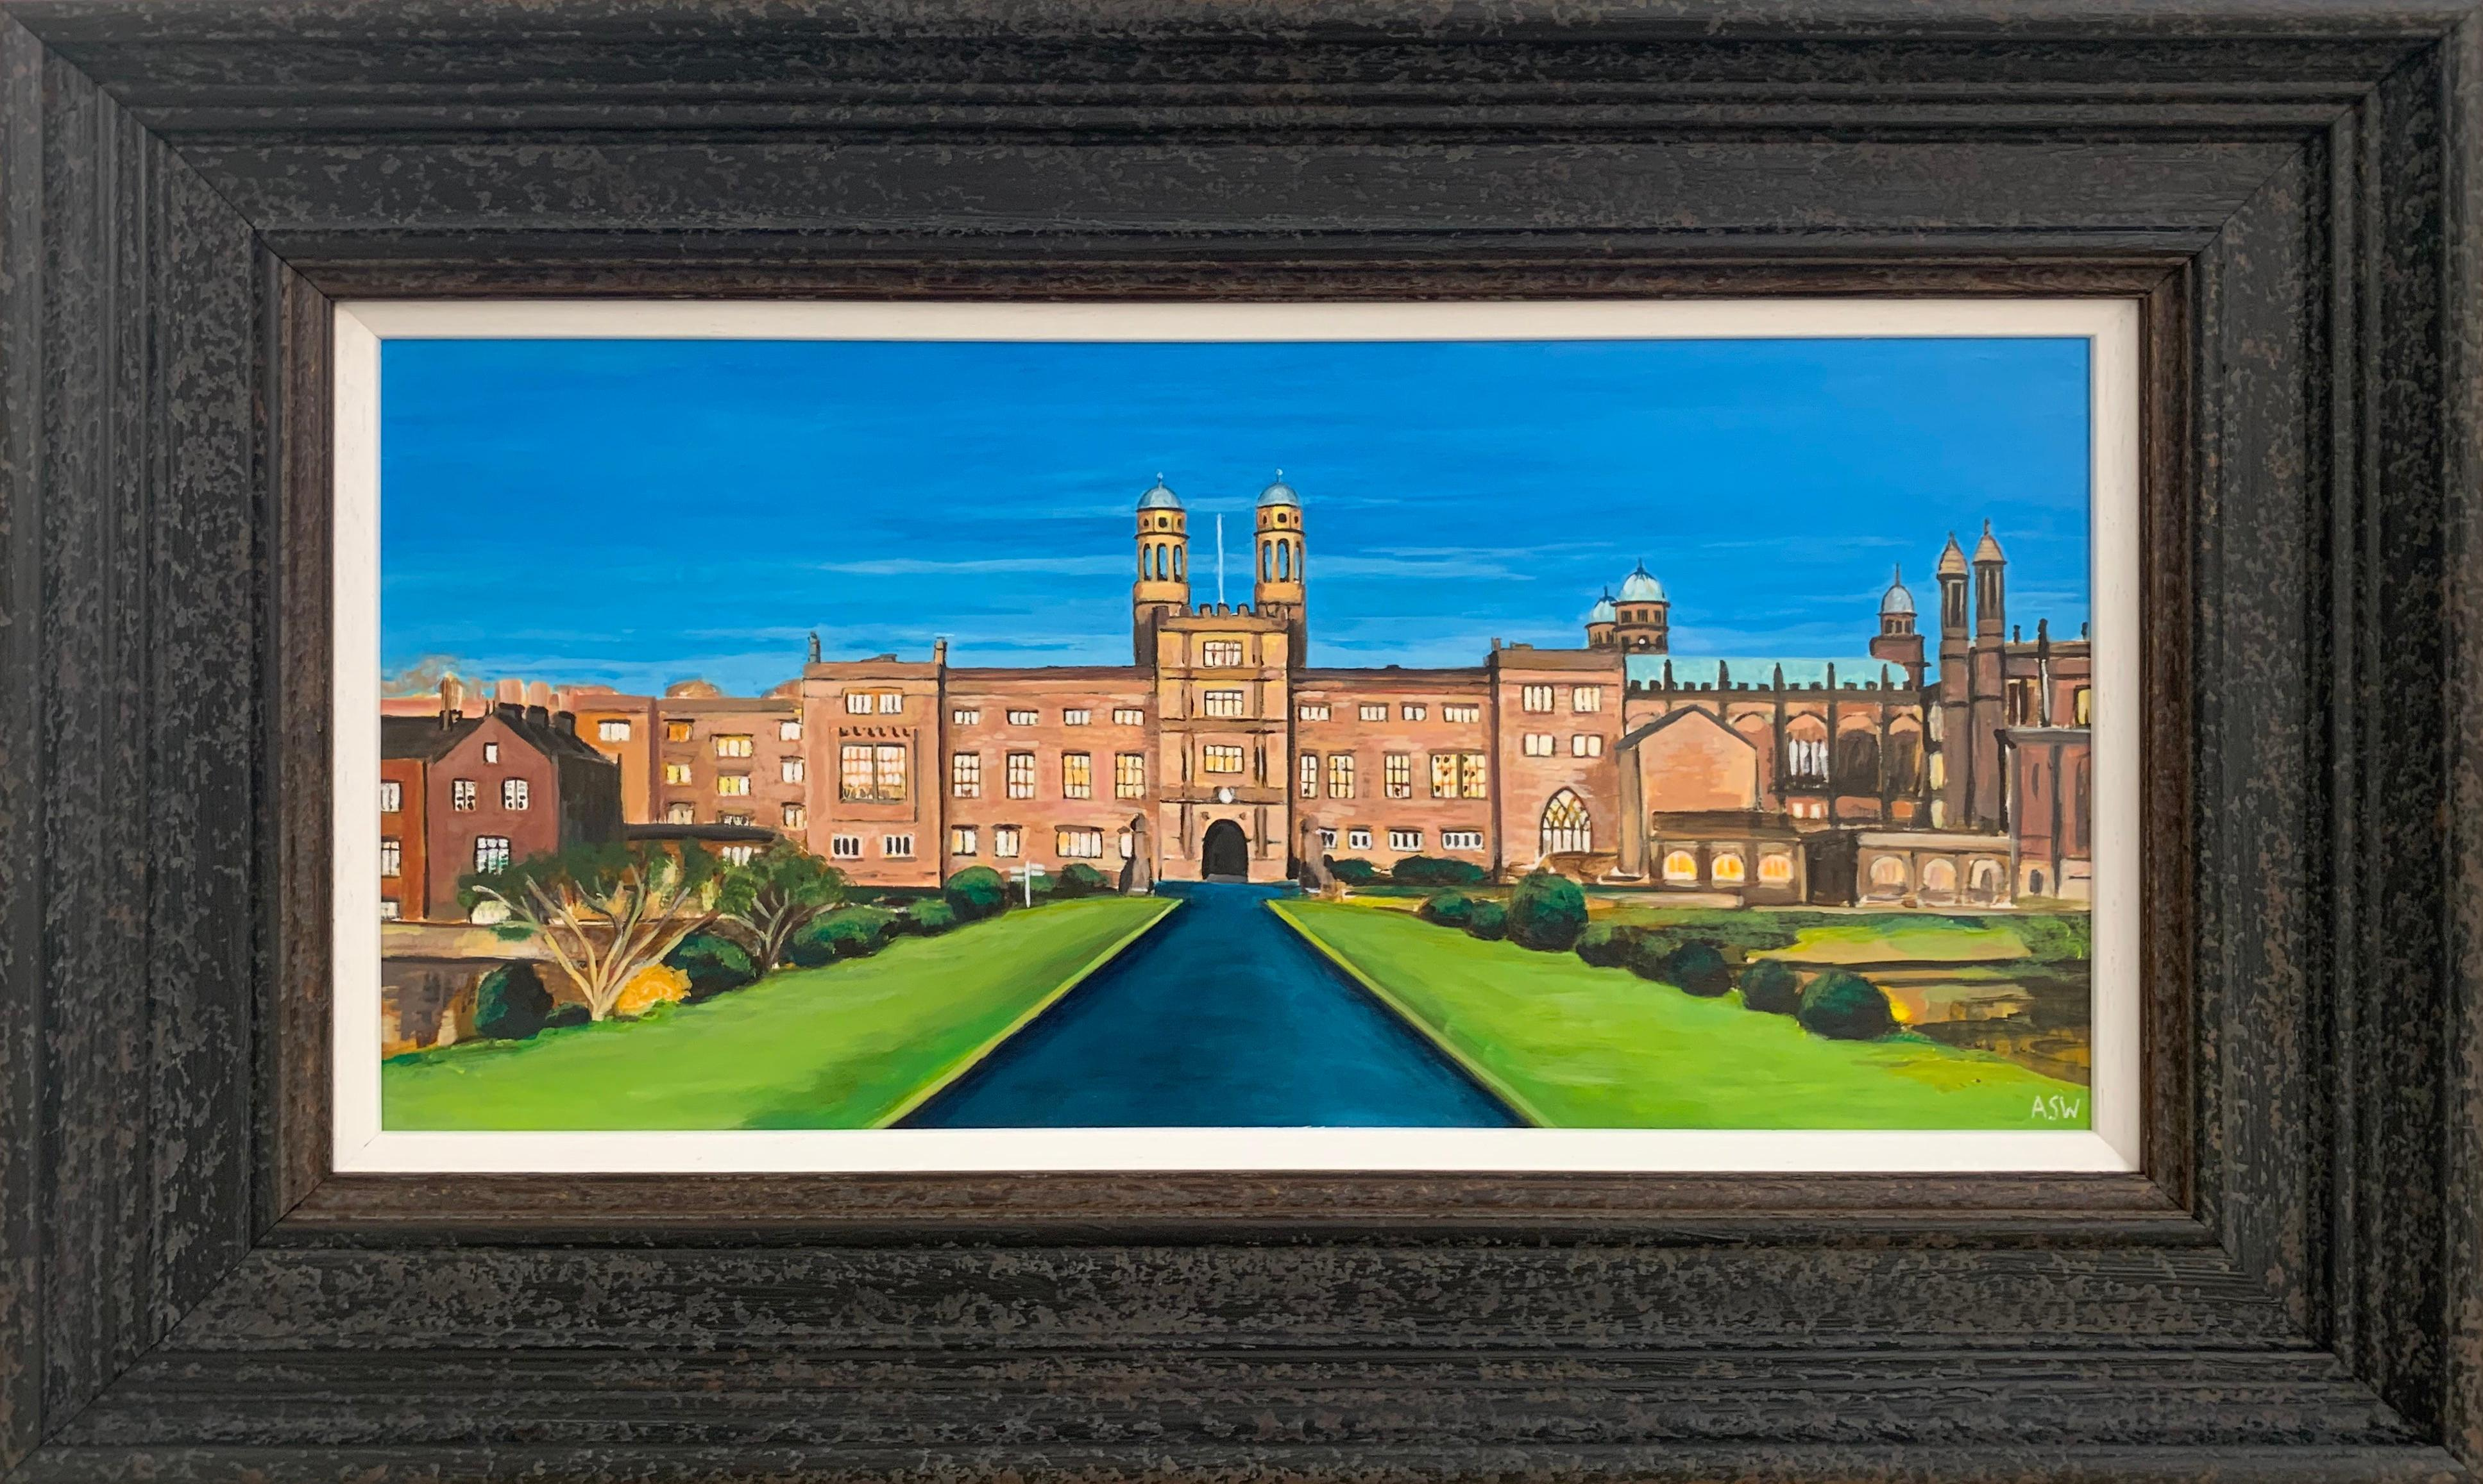 Stonyhurst College 16th Century Grade 1 Listed Building in English Countryside